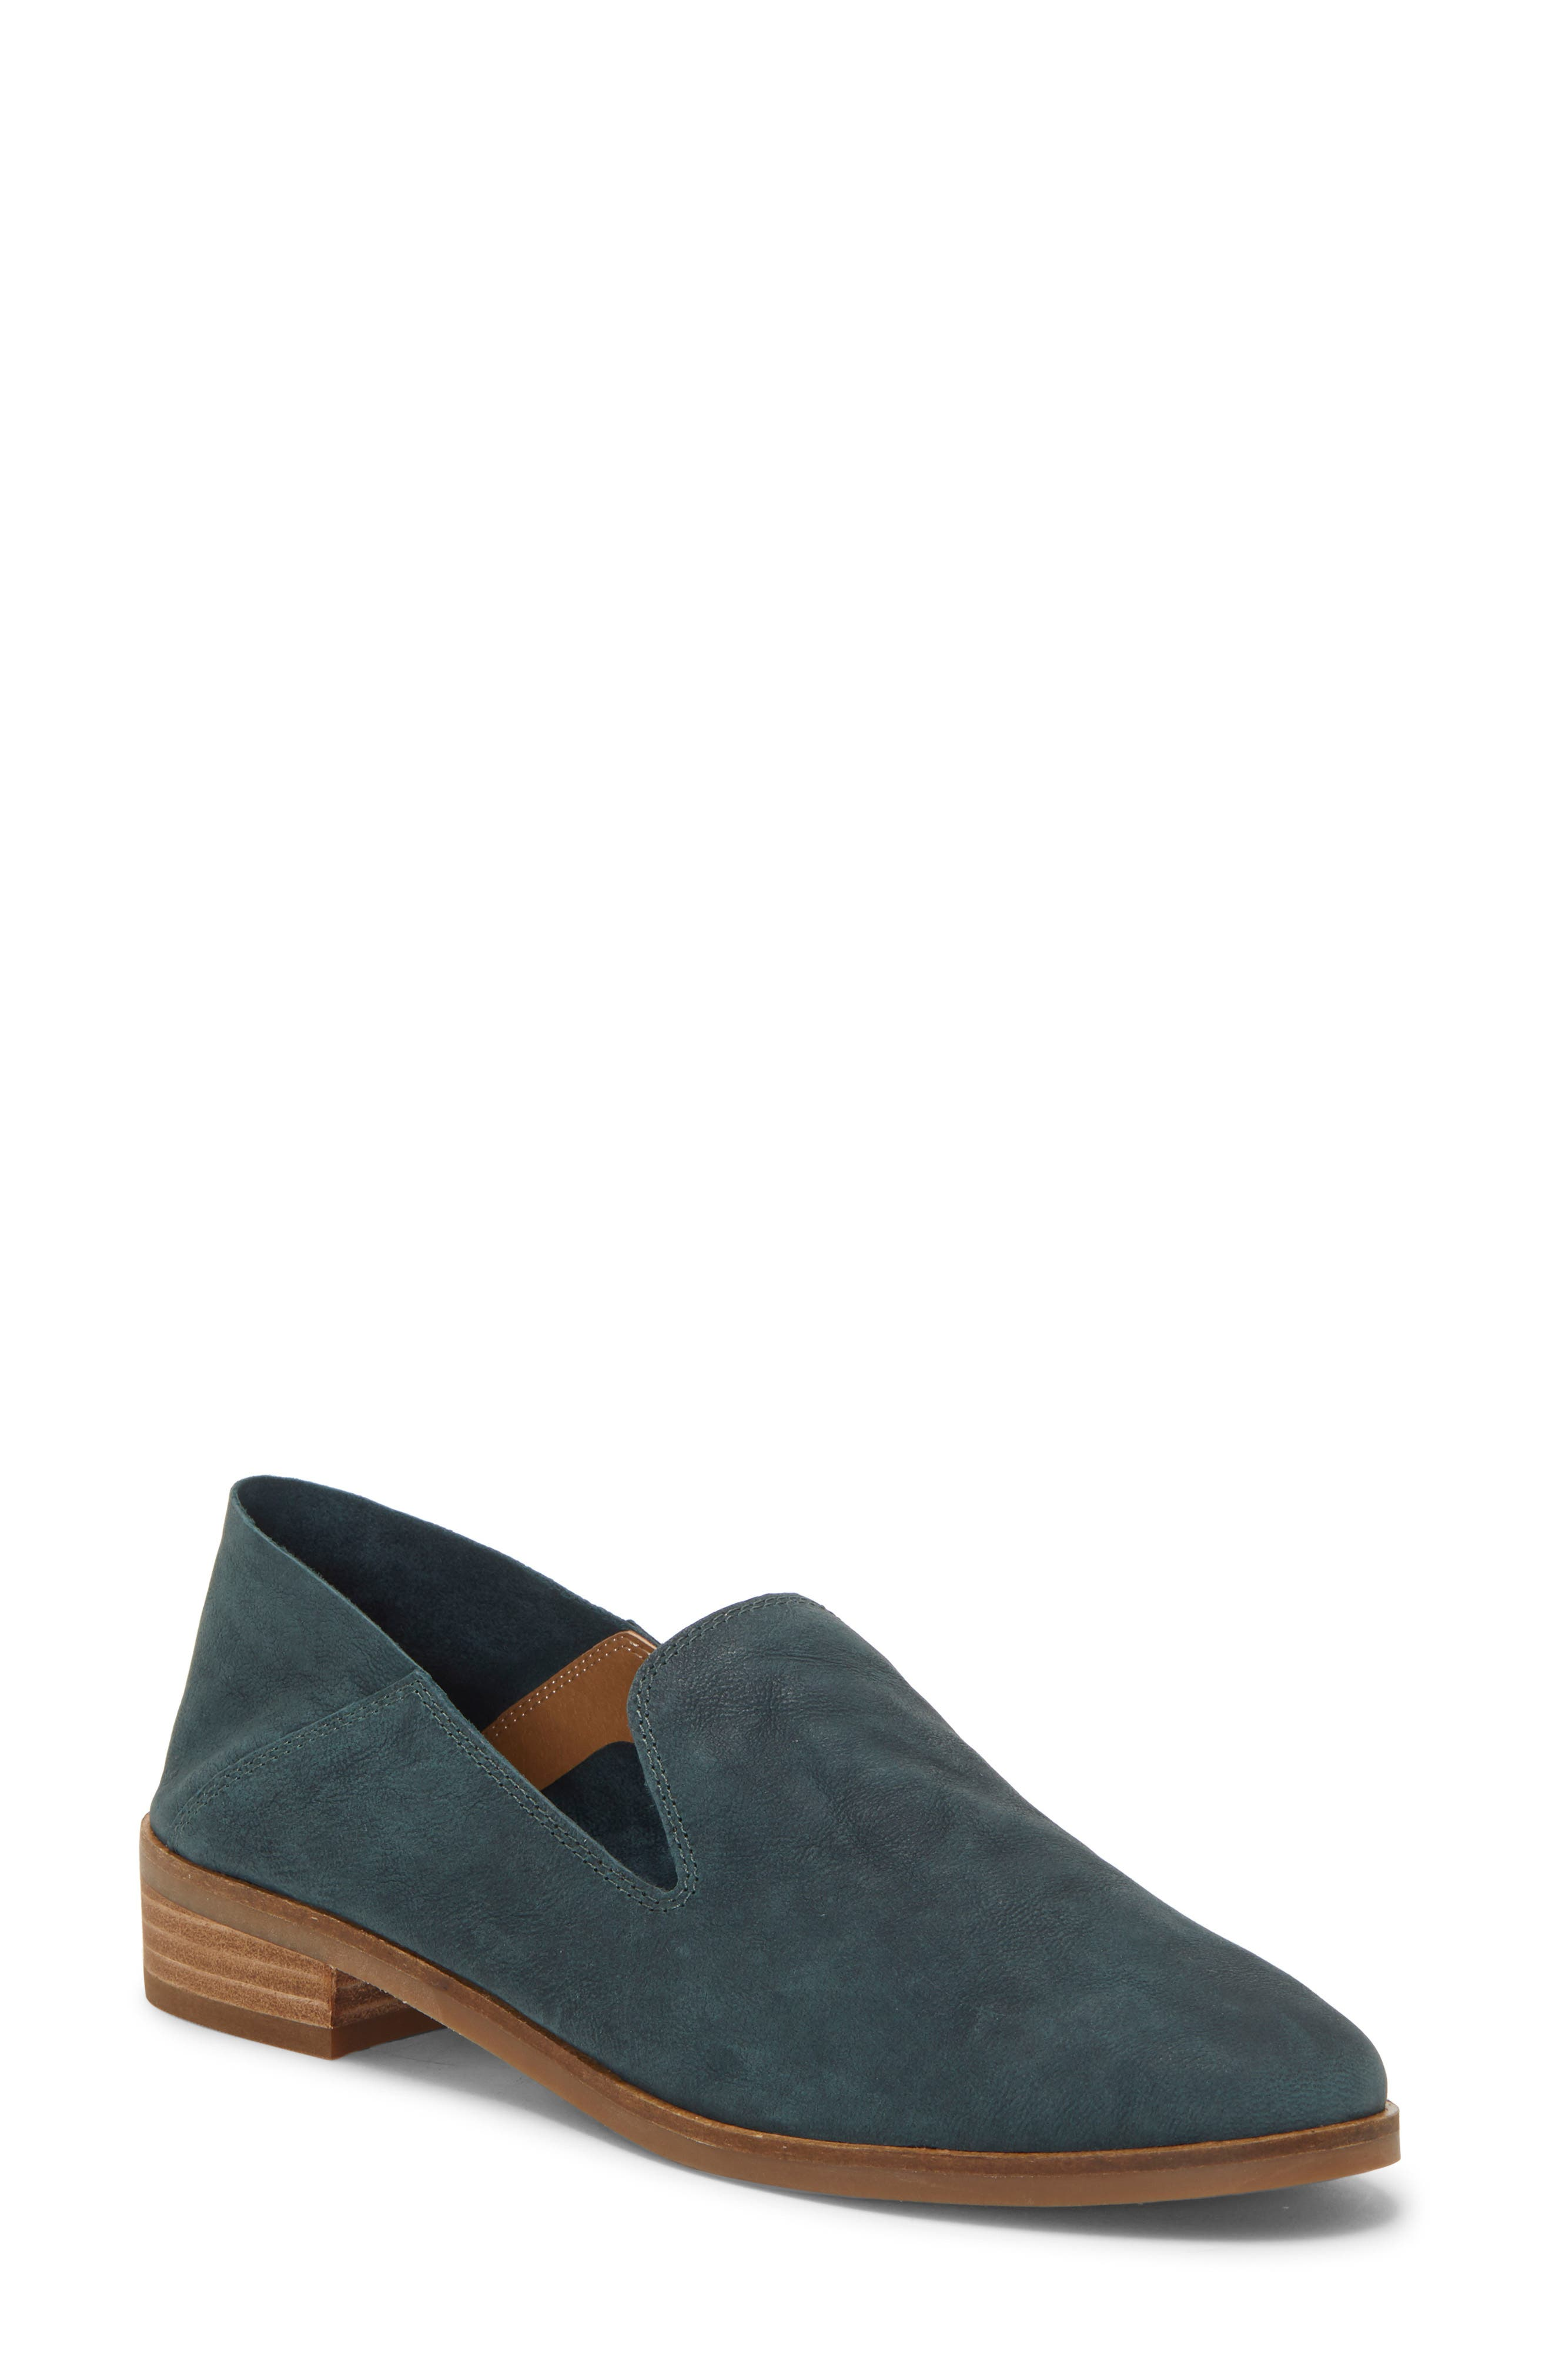 LUCKY BRAND Cahill Flat, Main, color, KELP LEATHER